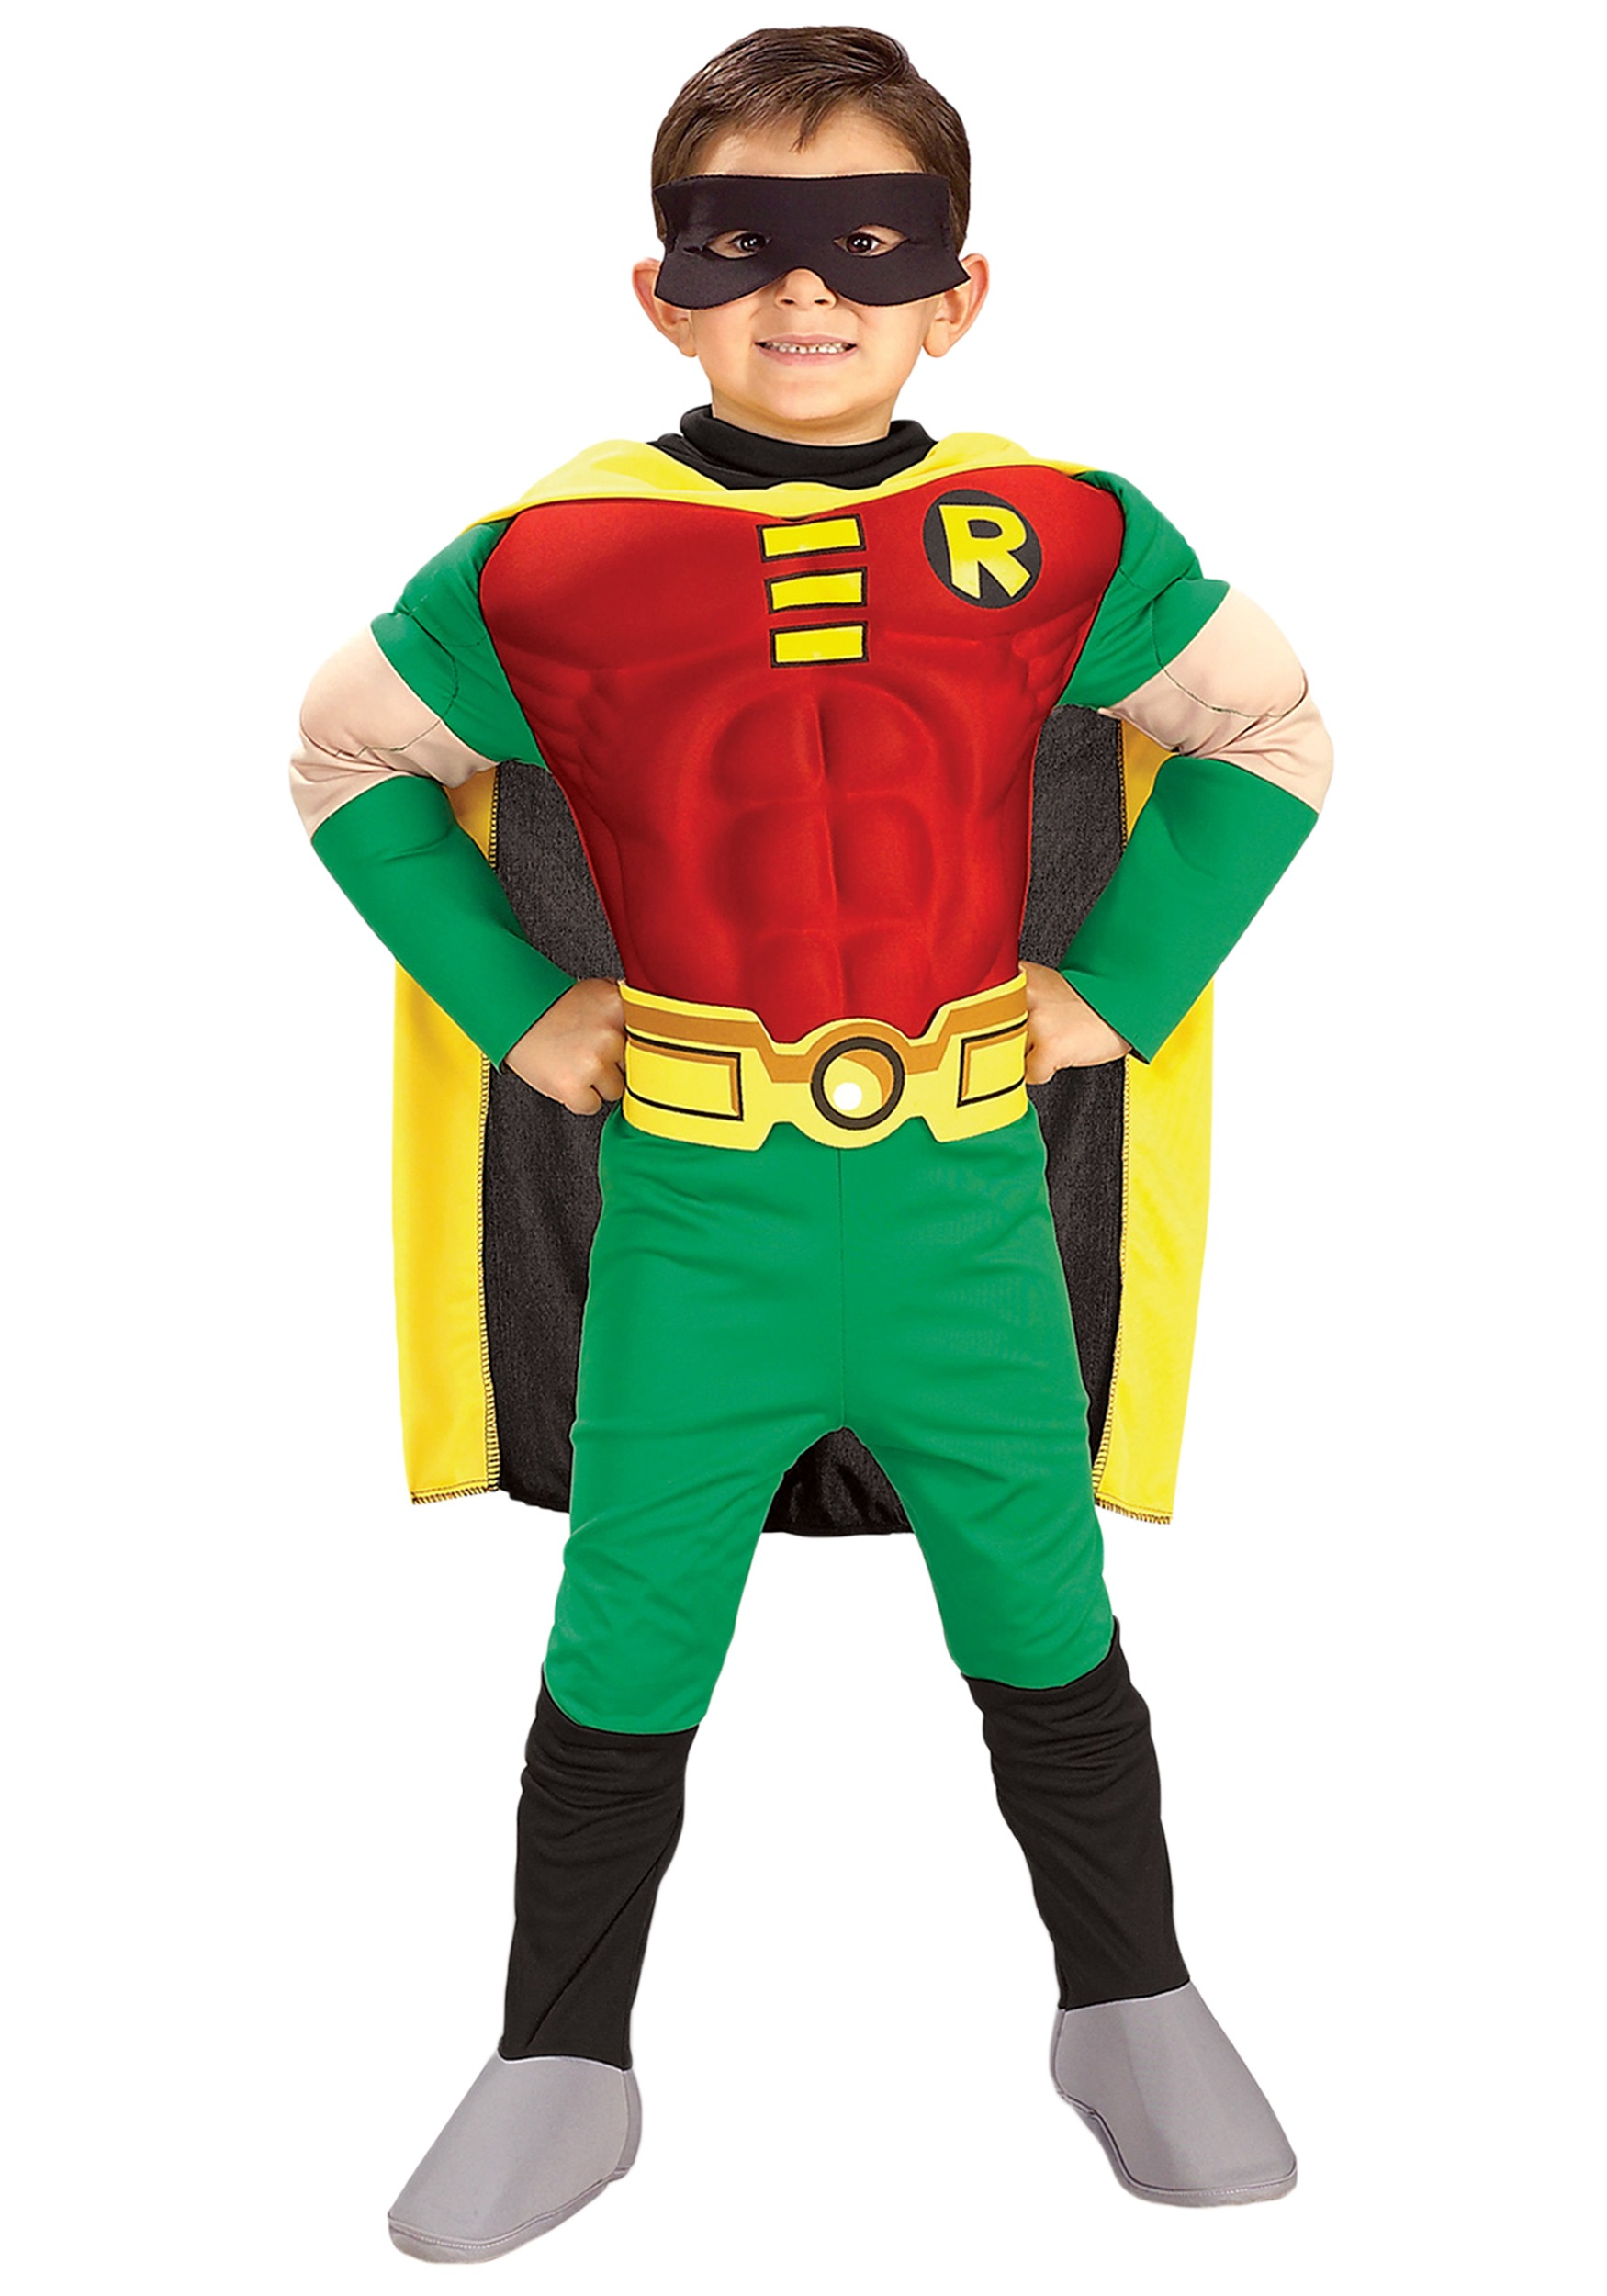 sc 1 st  Halloween Costumes : cool kids costumes  - Germanpascual.Com